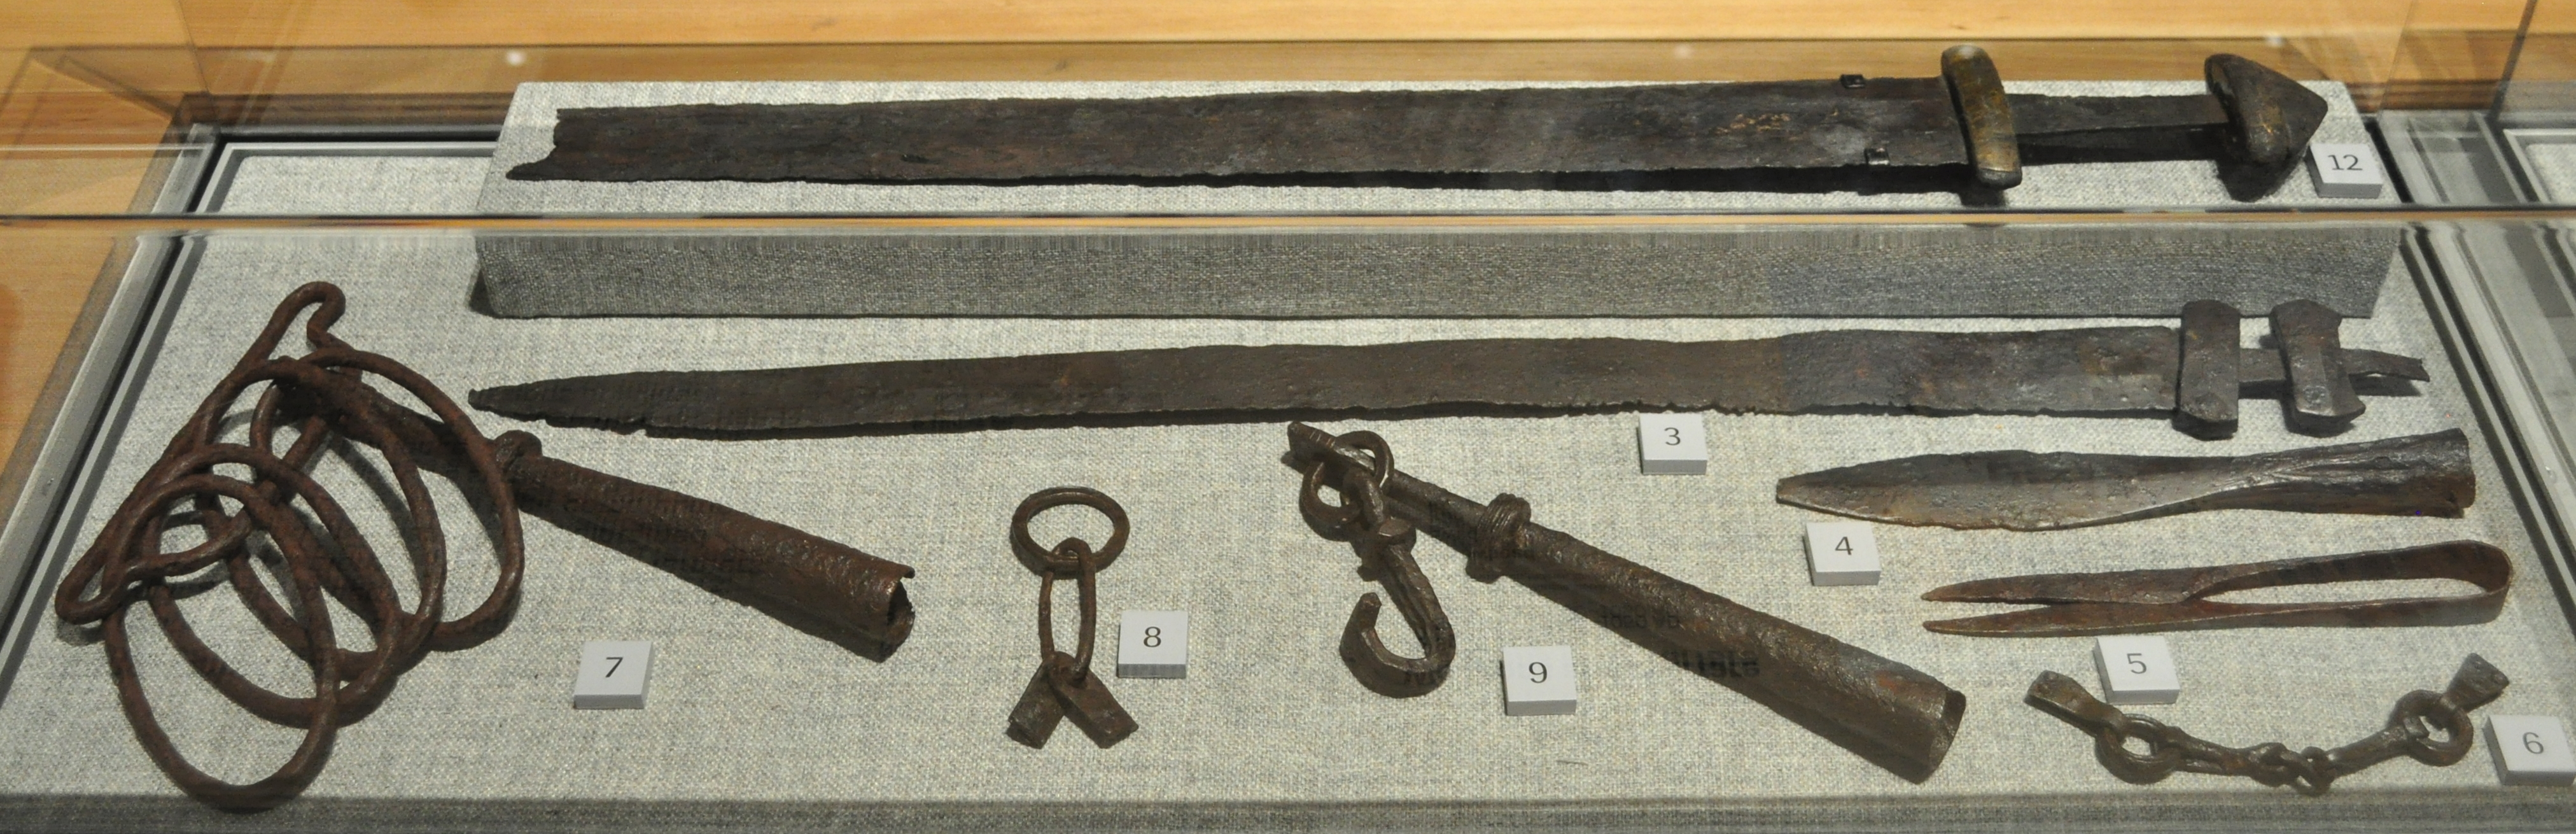 File Nordic Museum Contents Of A Viking Grave And Other Warfare Related Items 03 Jpg Wikimedia Commons